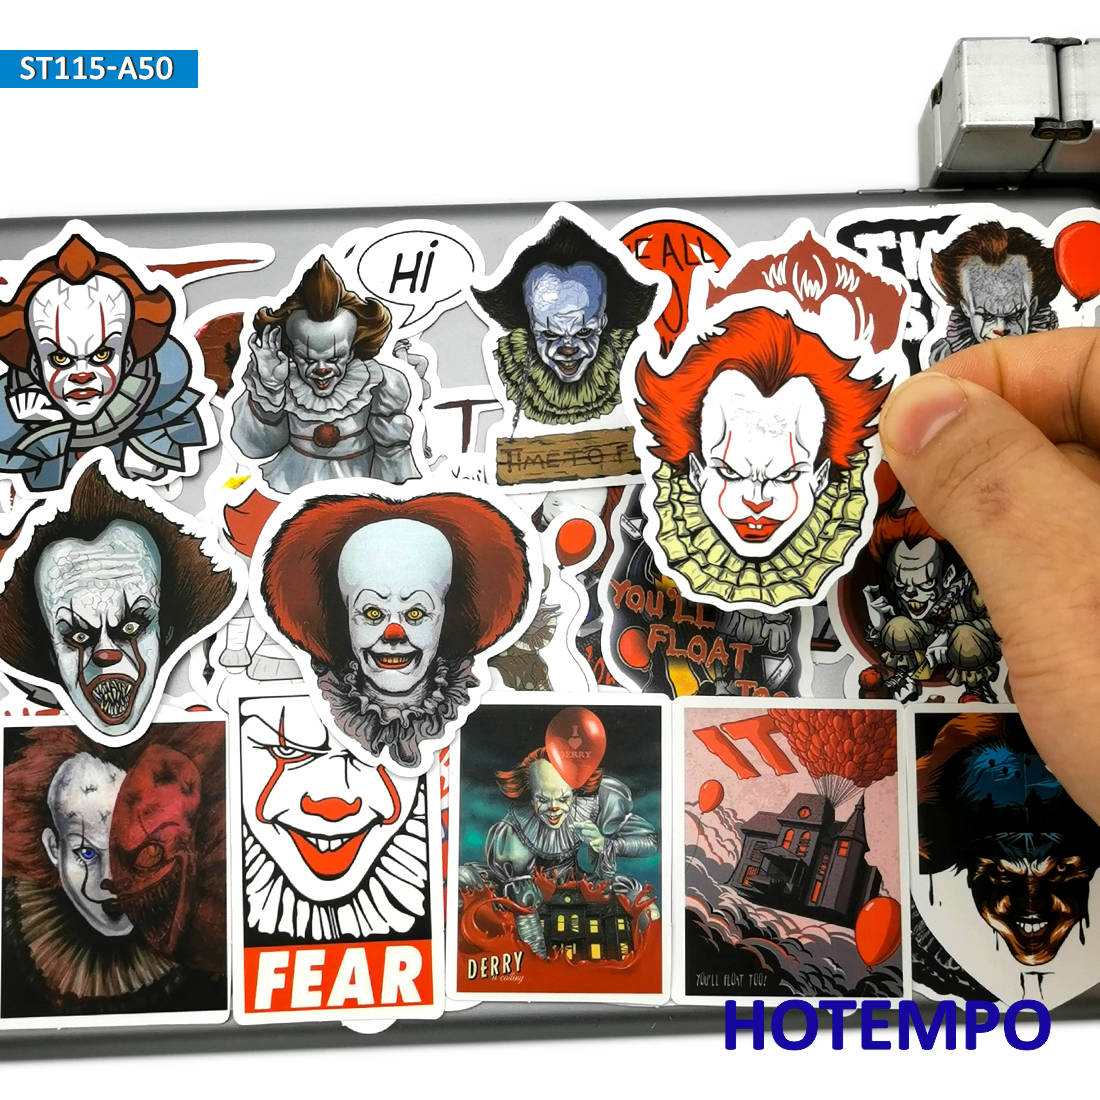 50pcs Terror Joker Ghost Movie IT Horror Style Clown Anime Stickers For Mobile Phone Laptop Luggage Pad Skateboard Bike Stickers